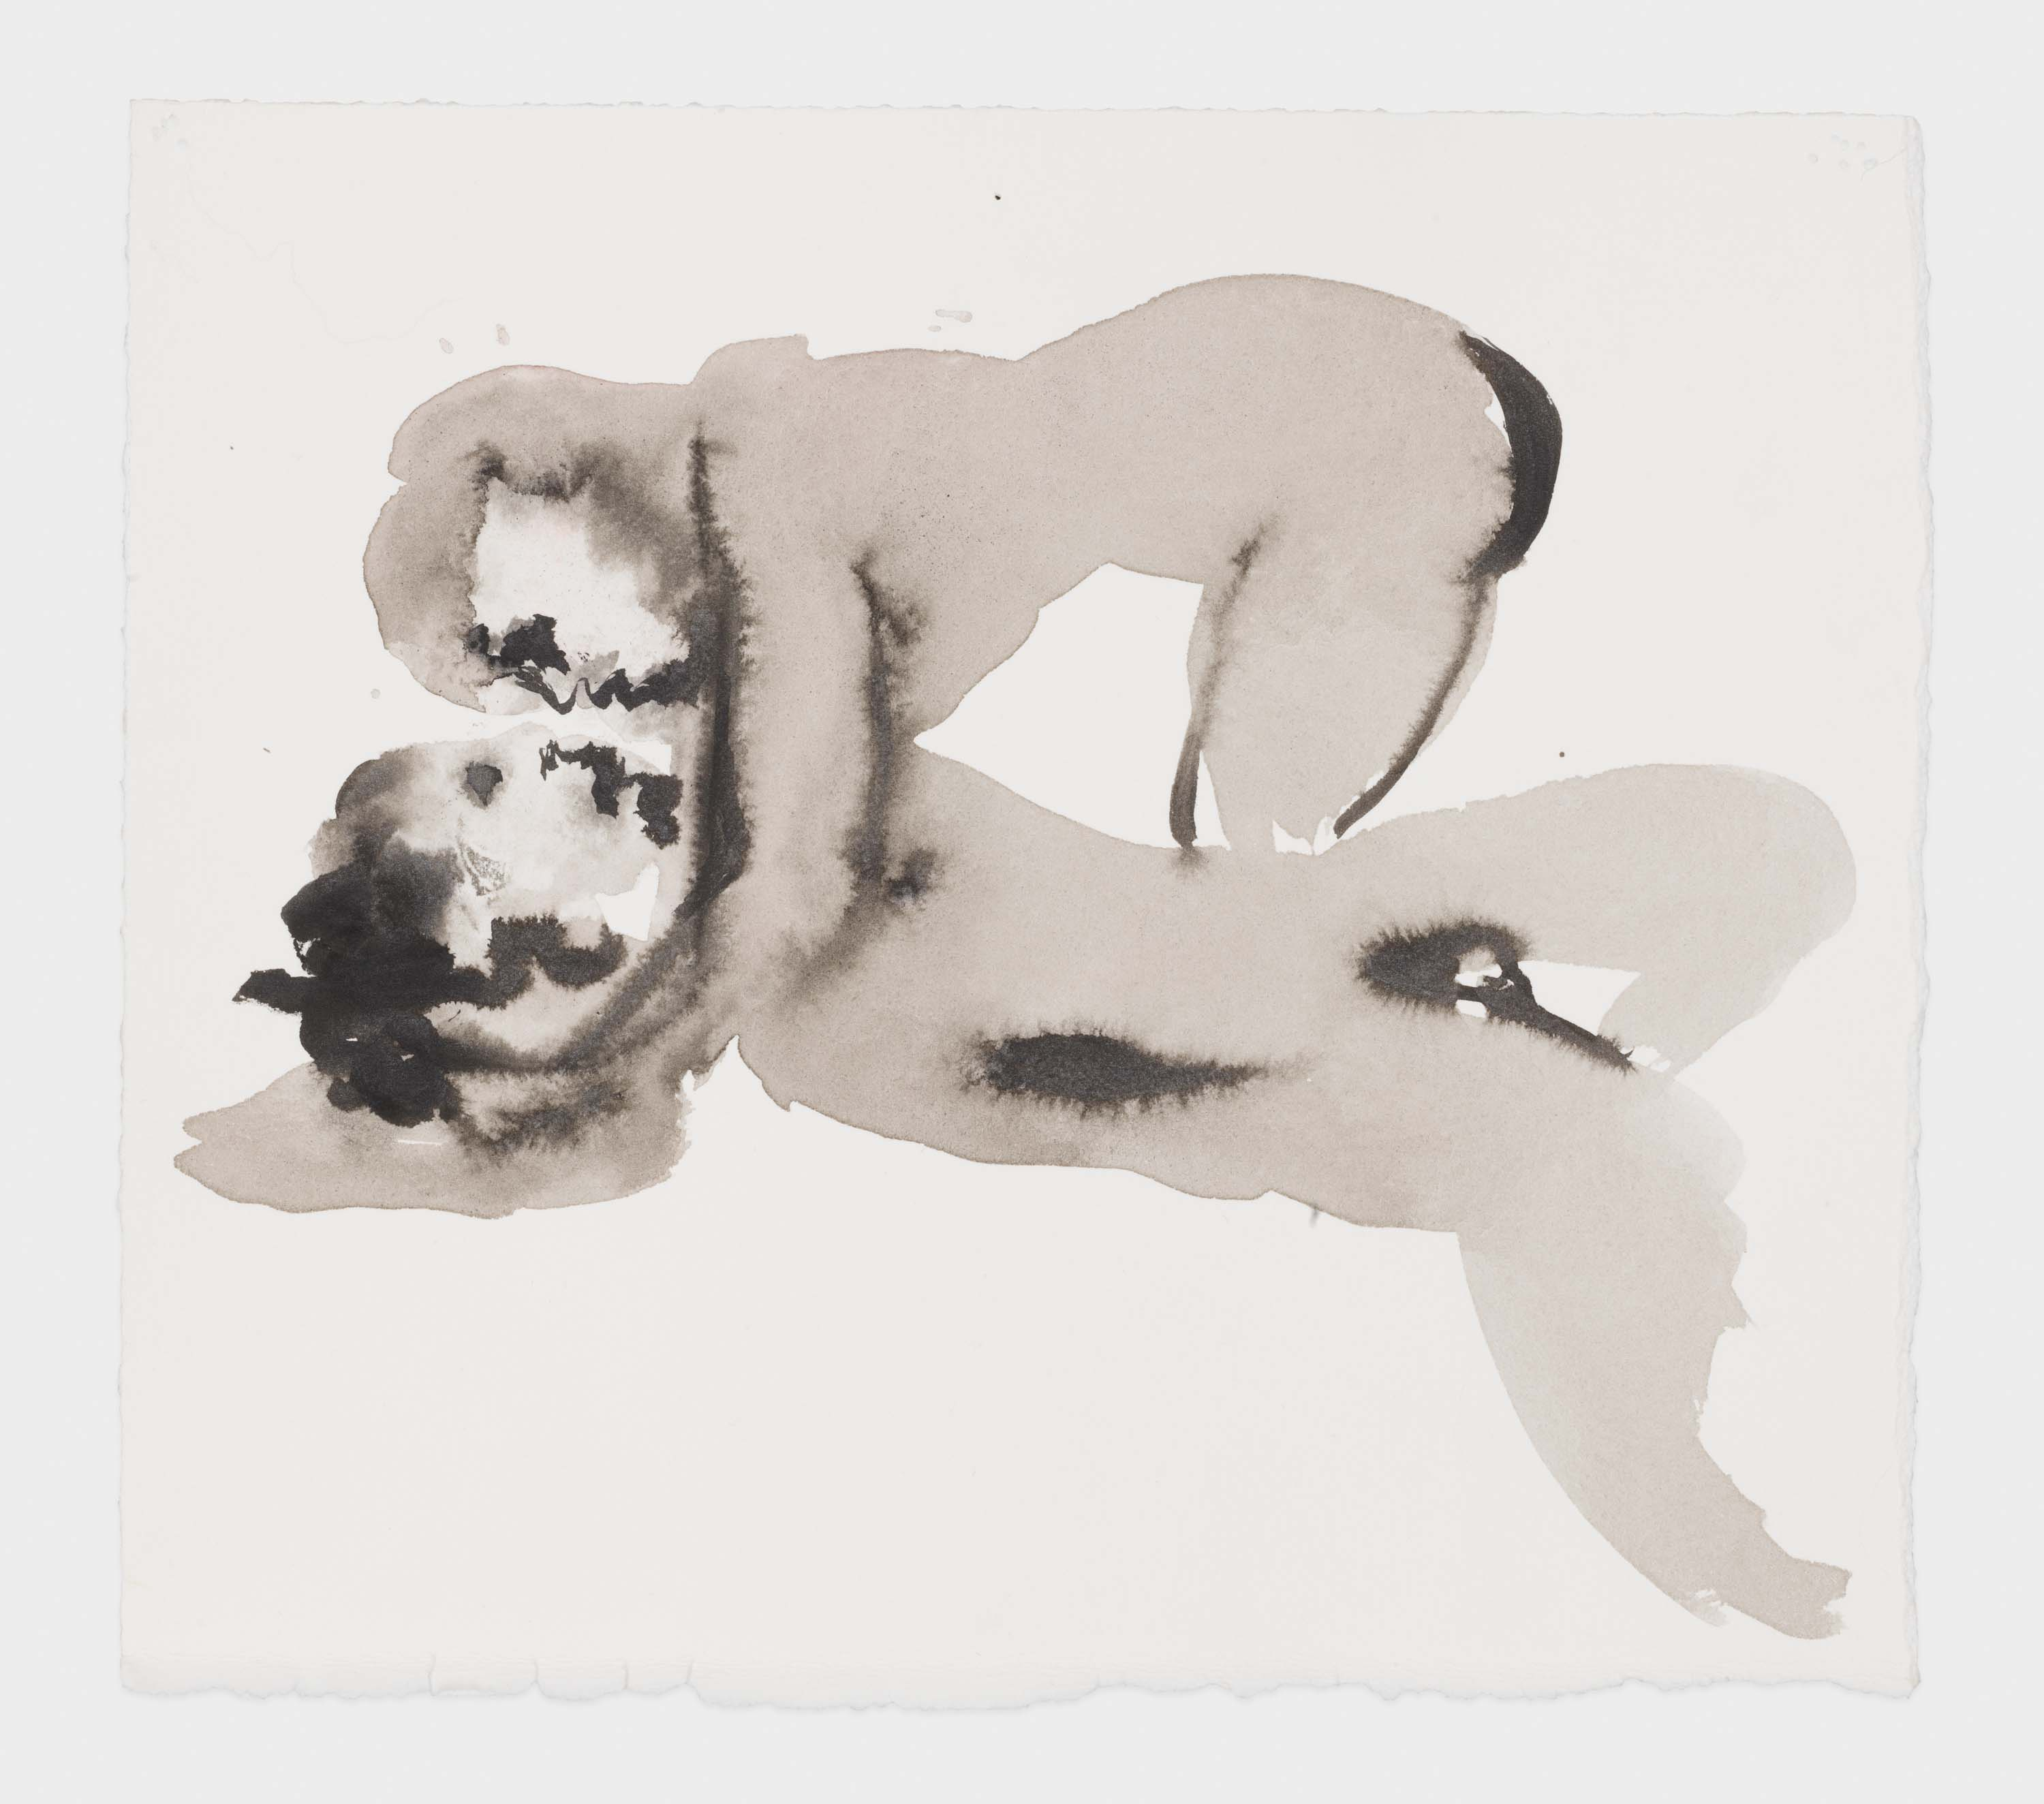 """Marlene Dumas, """"Venus with Body of Adonis"""", 2015-2016, Ink wash and metallic acrylic on paper 10 1/4 x 11 3/8 inches 26.0 x 28.9 cm. Exposition """"Myths & Mortals"""", Galerie David Zwirner, New-York"""